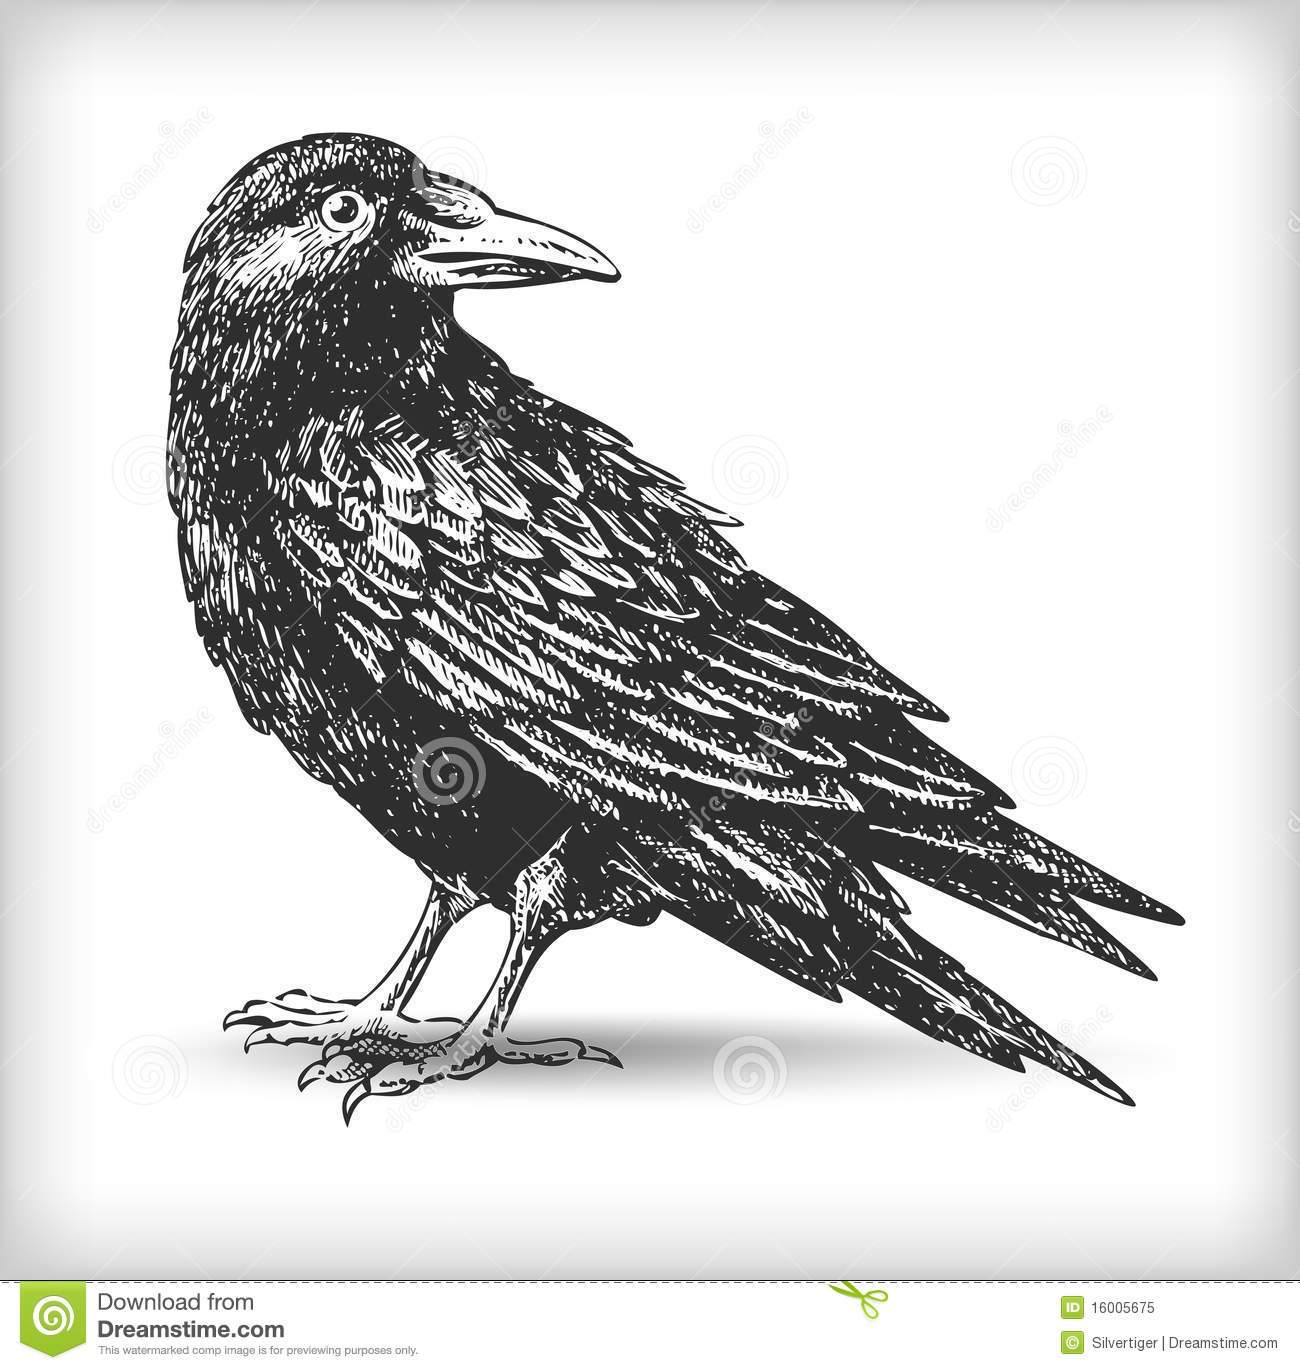 Line Drawing Raven : Raven drawing stock vector illustration of line hand